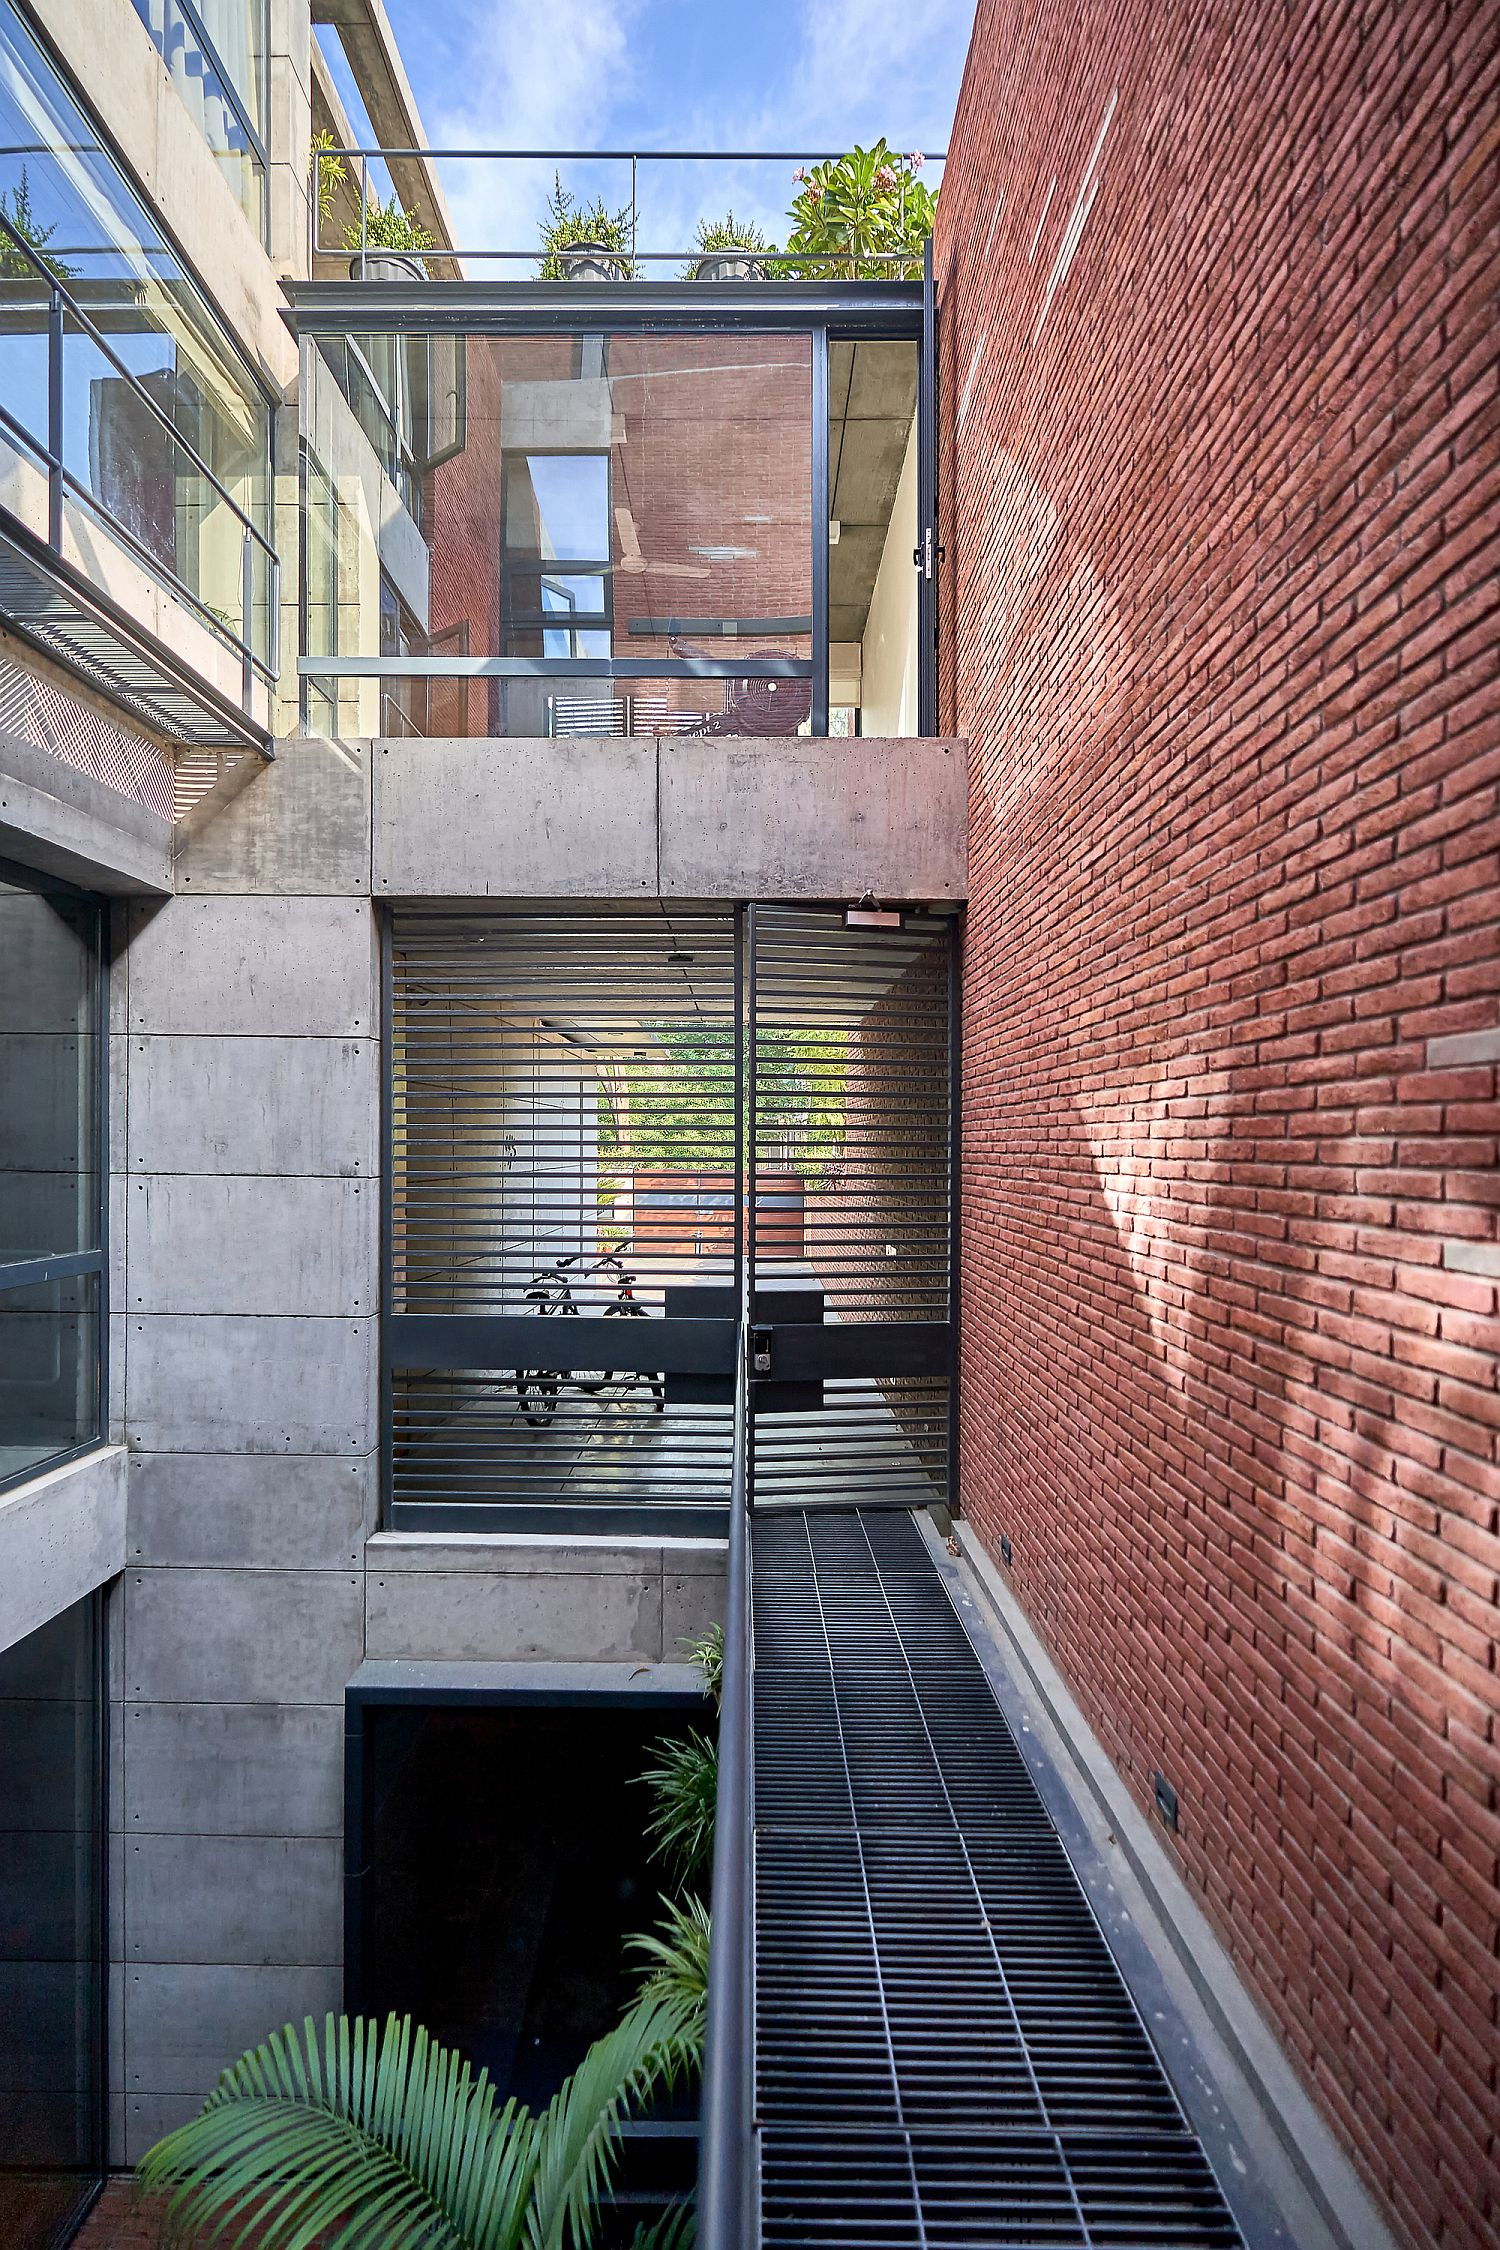 Central void brings ample natural ventilation into the studio